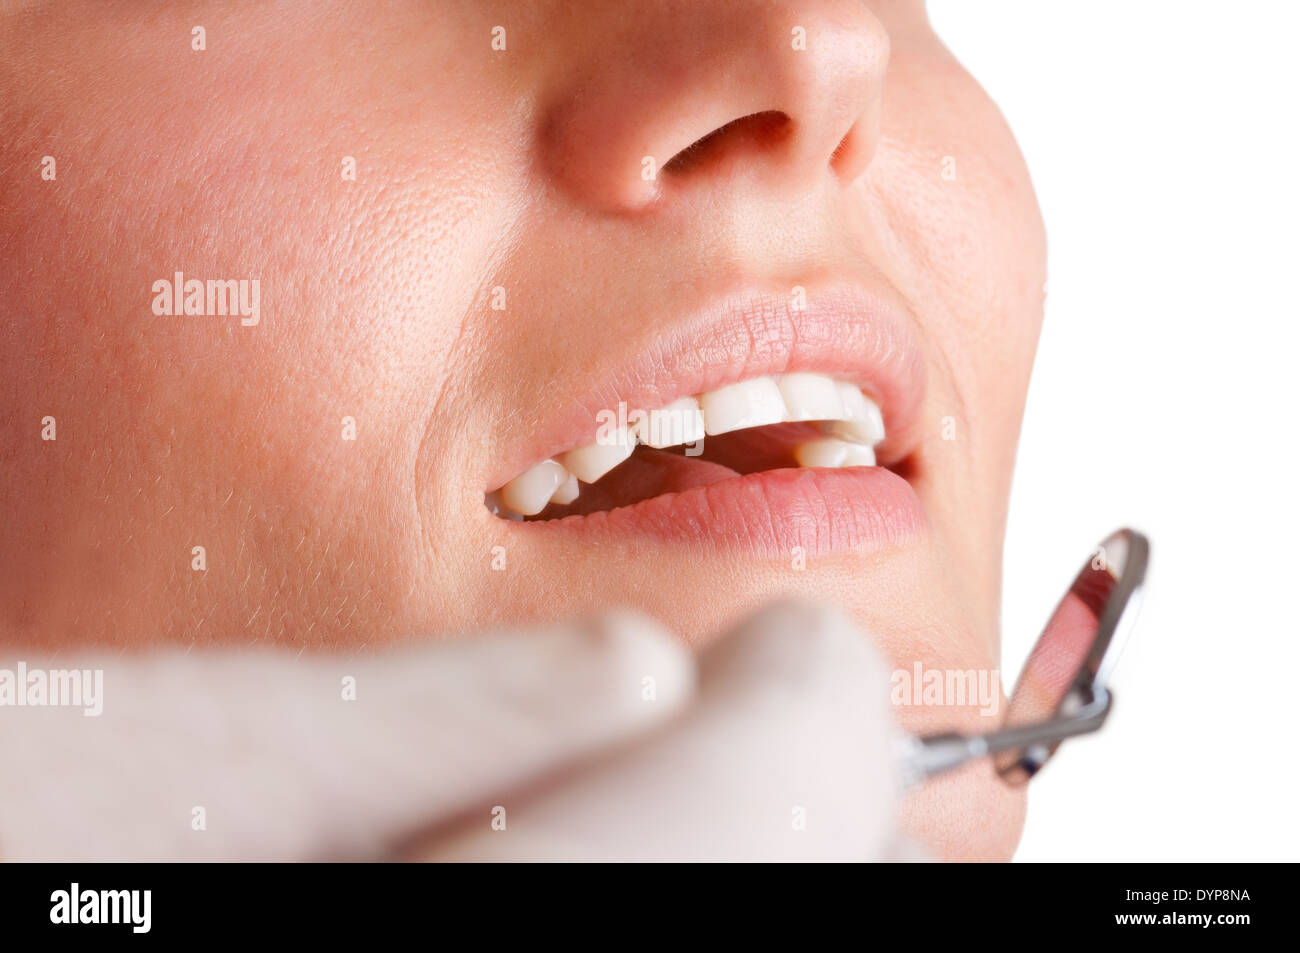 Closeup of a dentist hands about to do a procedure on a patient - Stock Image